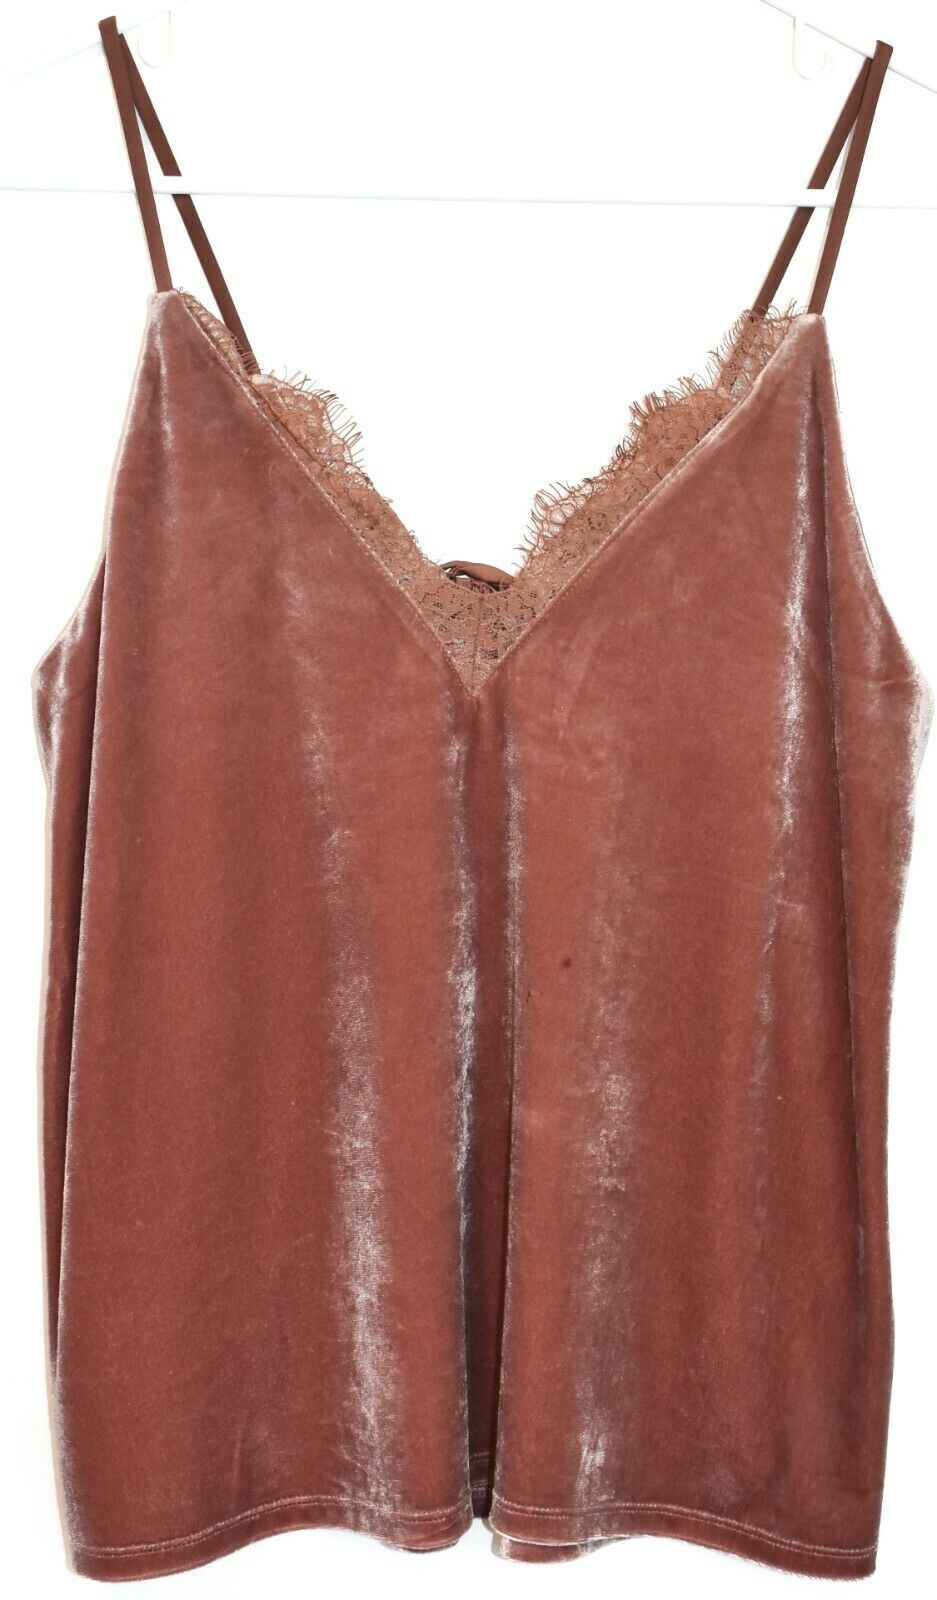 Express Women's Rosewood Pink Lace Trim Velvet Camisole Cami Tank Top Size S